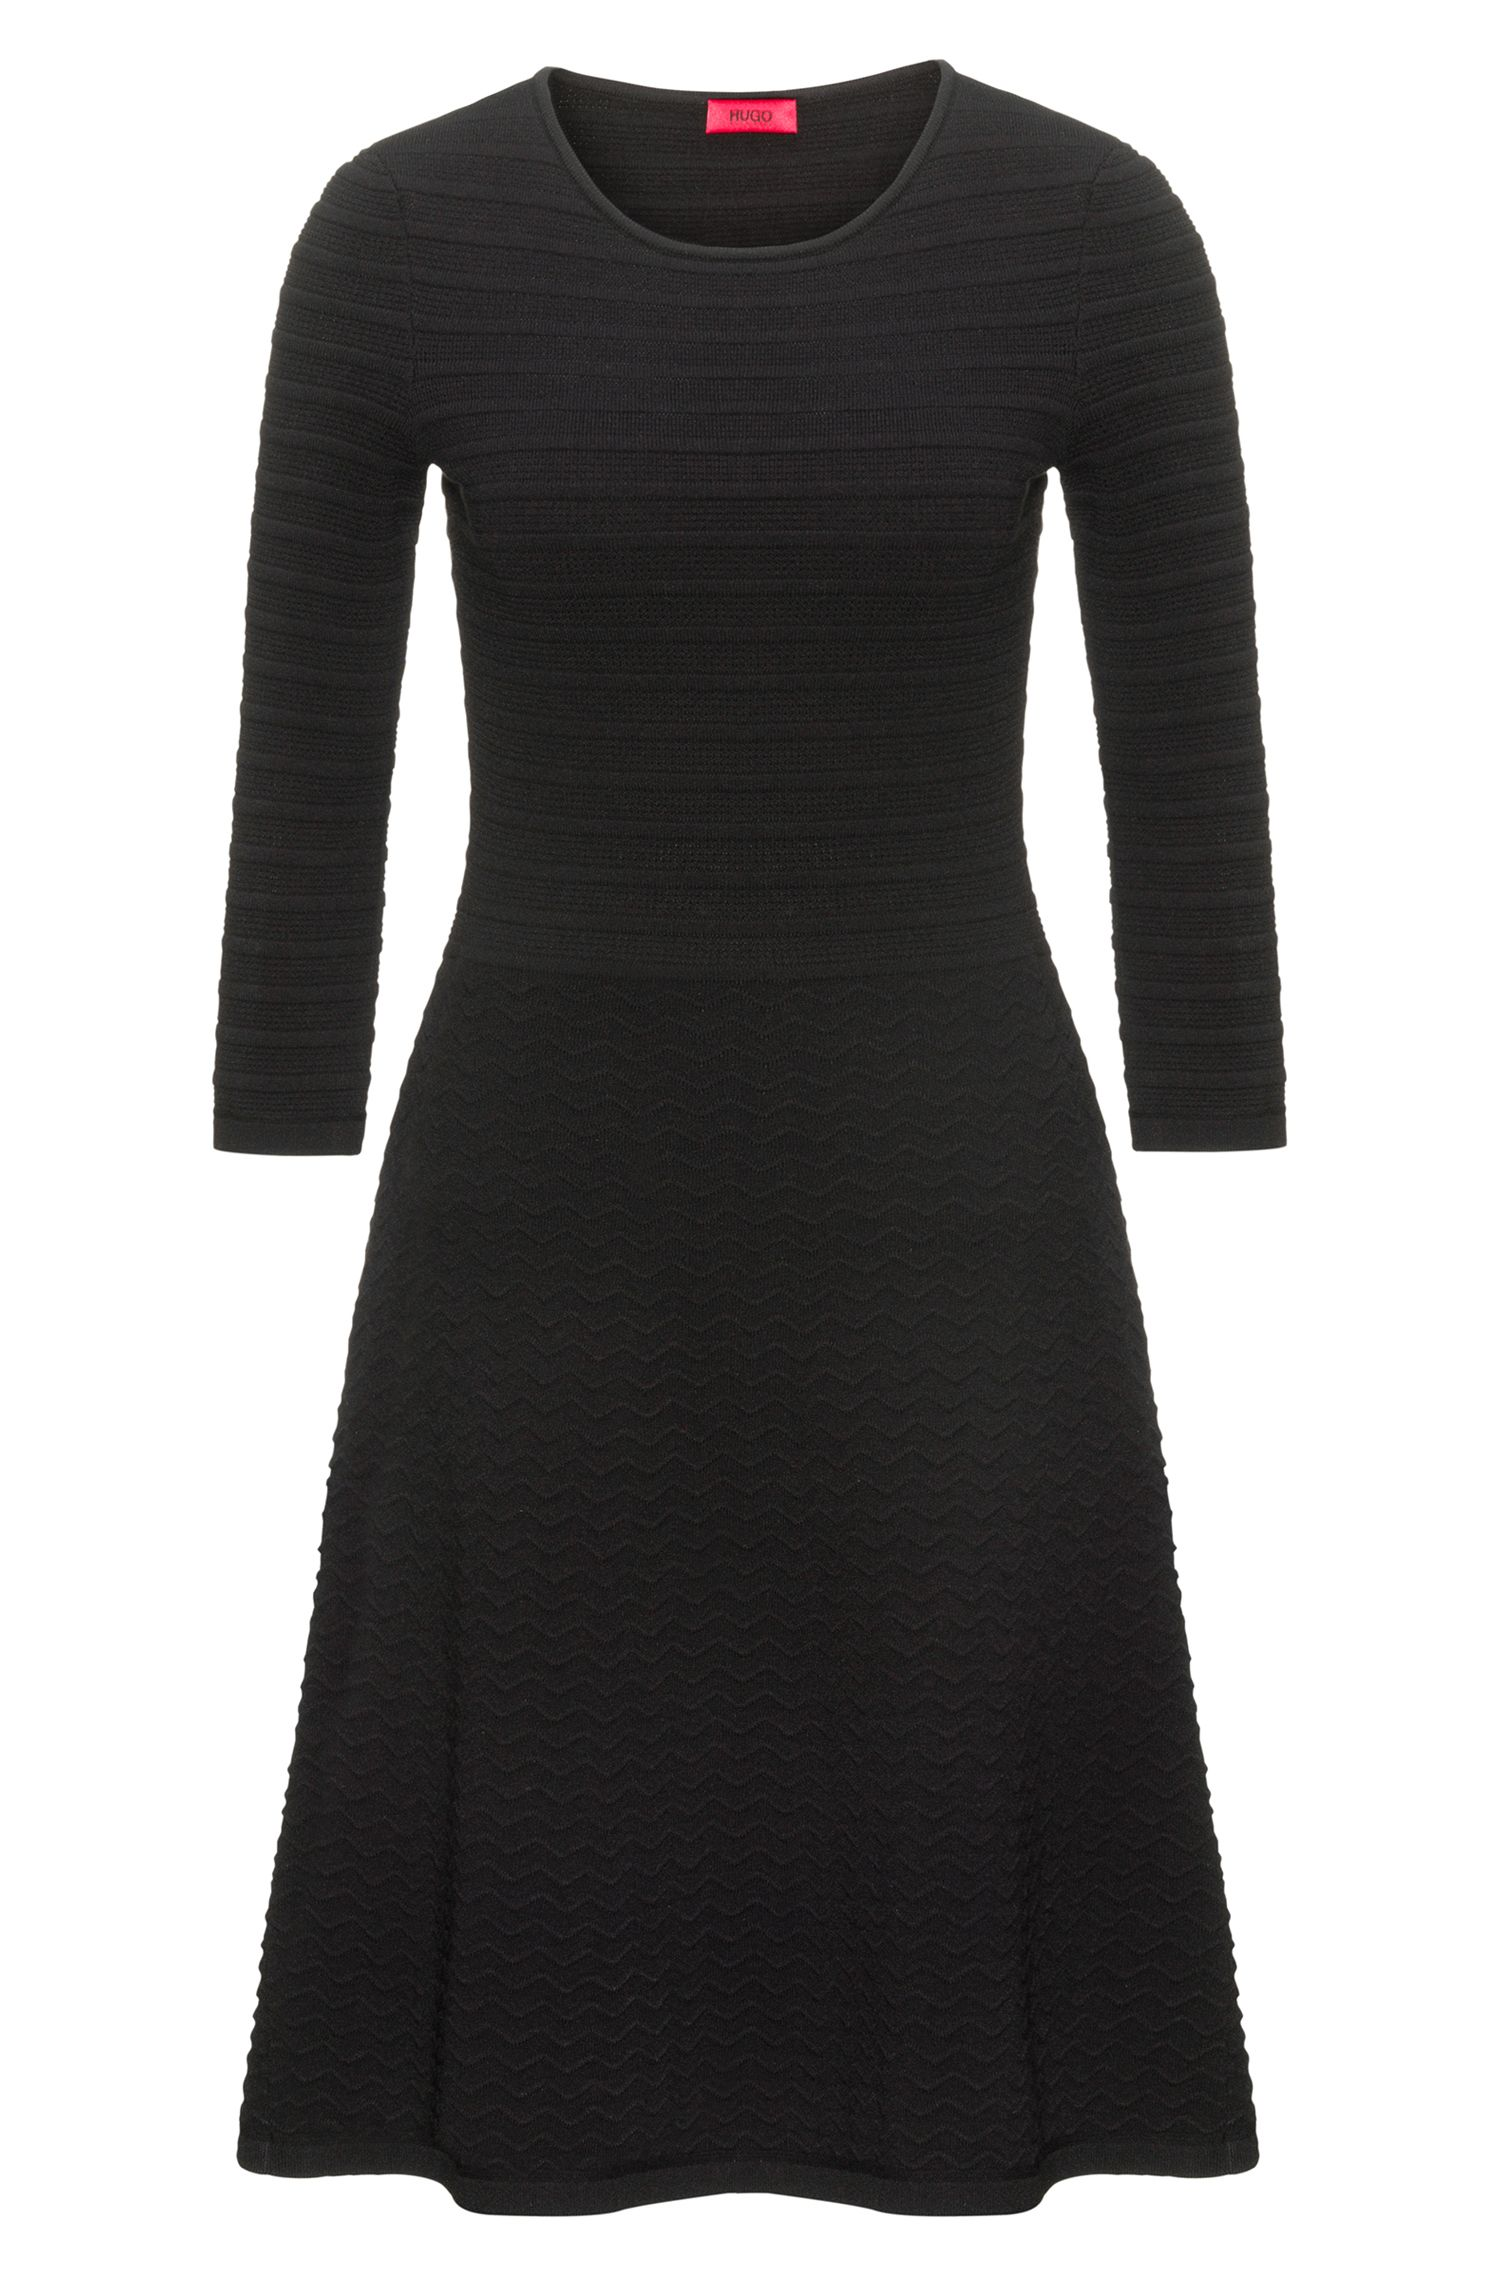 Crew-neck knitted dress in mixed 3D structures